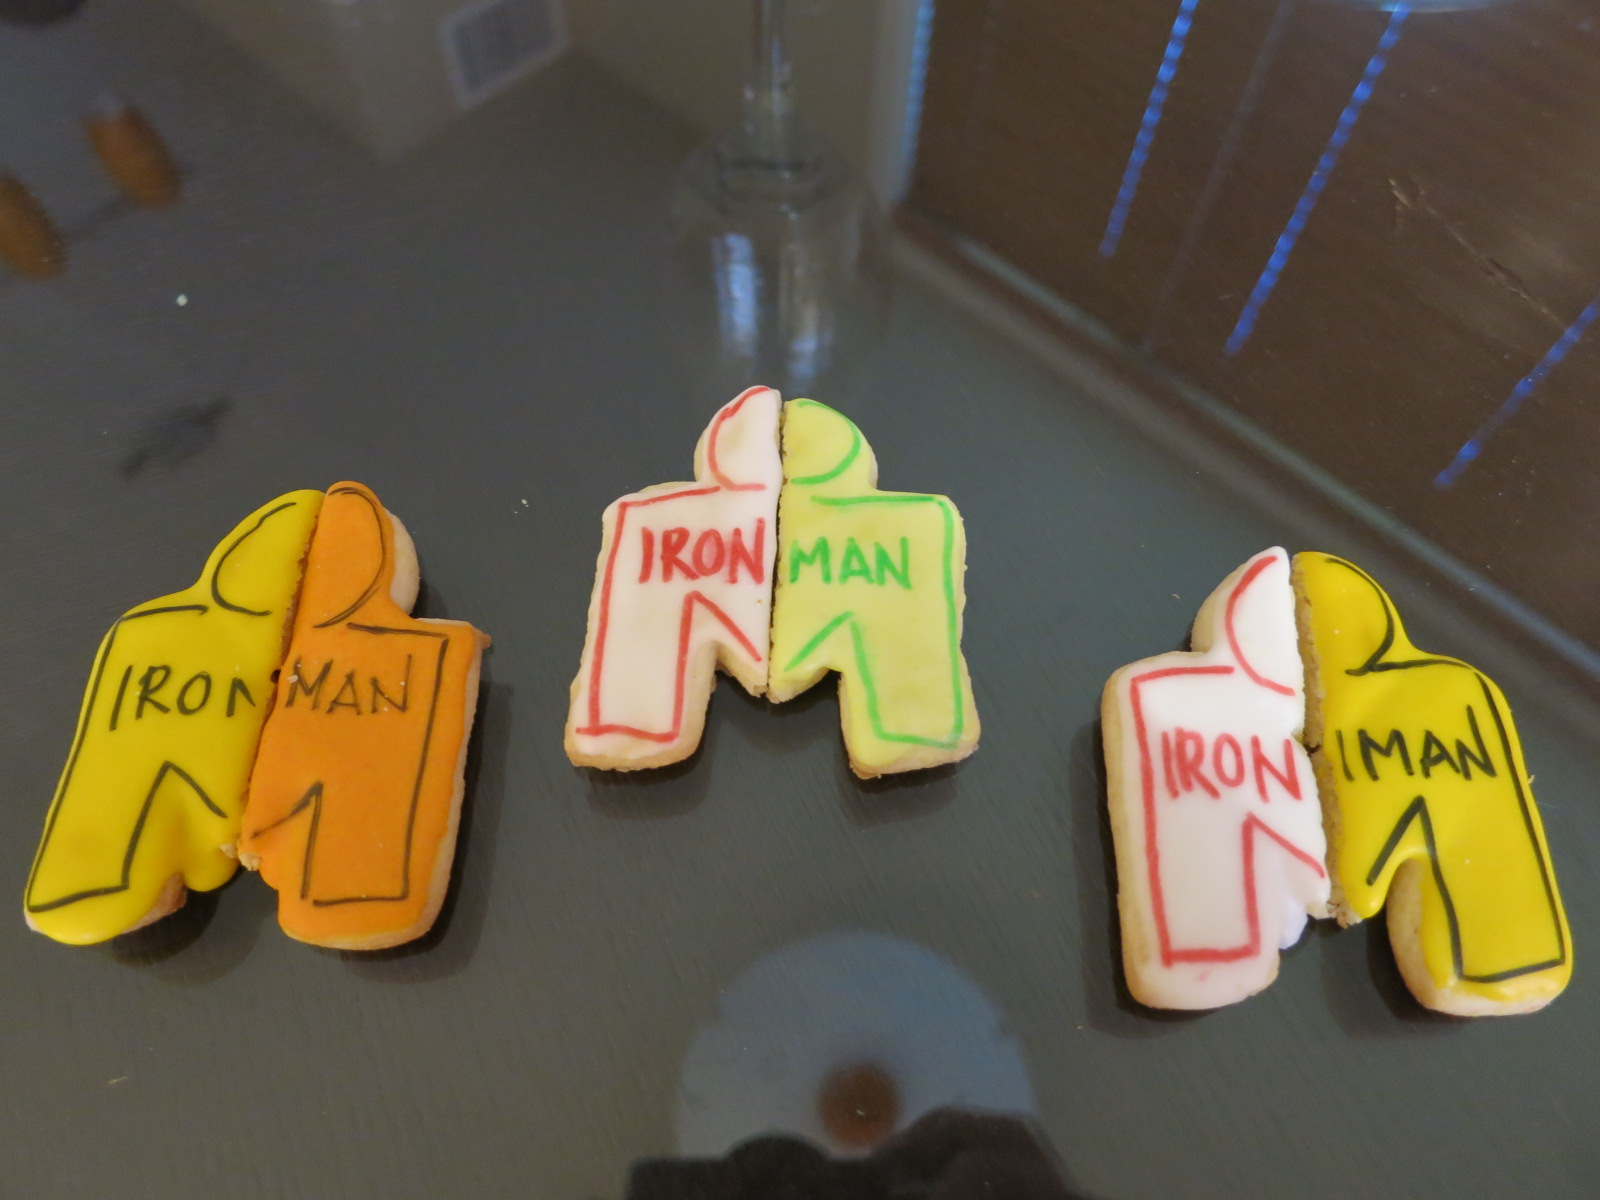 Half Ironman cookies - as delicious as they are cute!